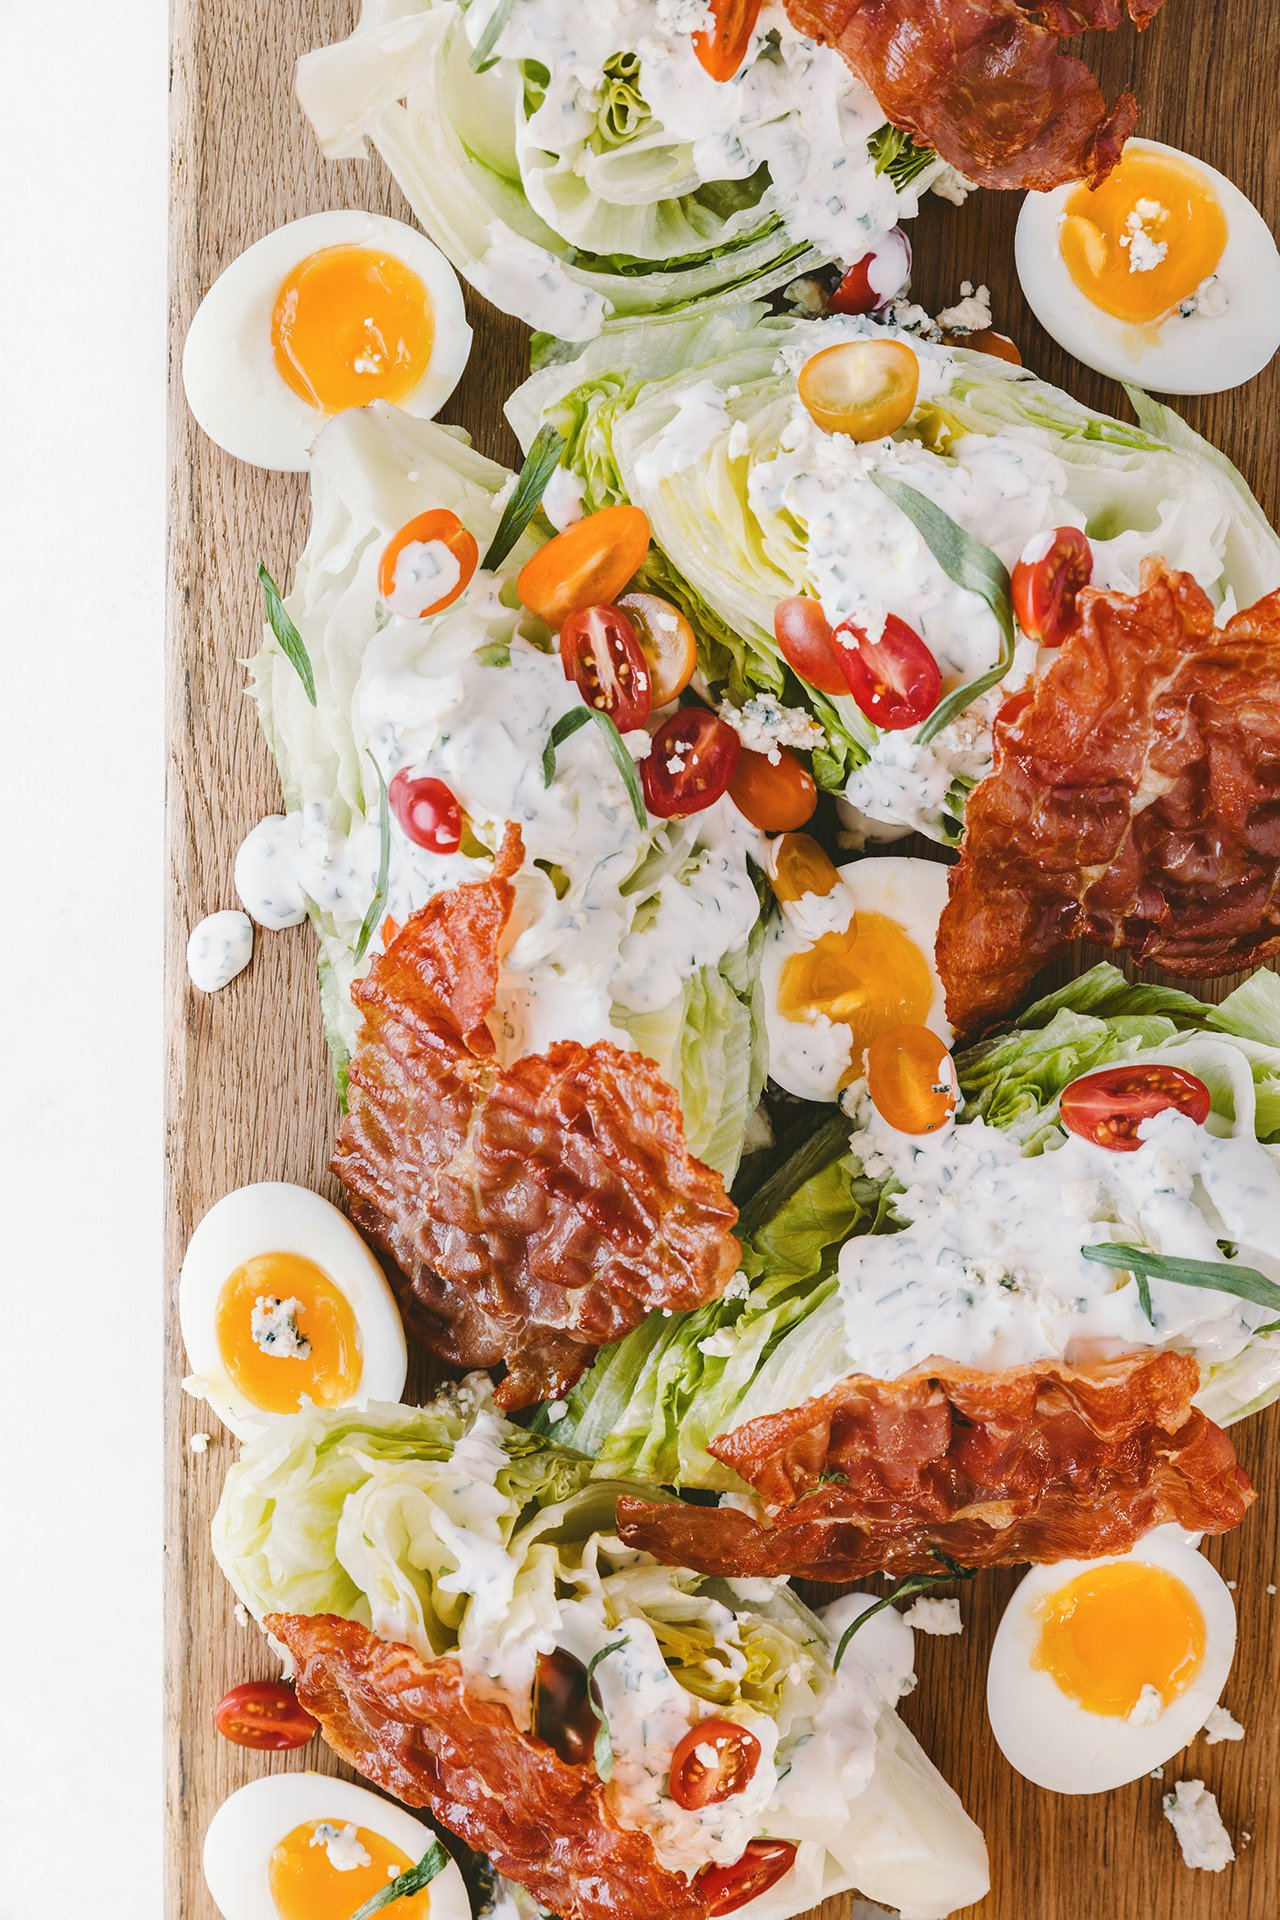 Wedge Salad with Homemade Ranch | HonestlyYUM (honestlyyum.com)